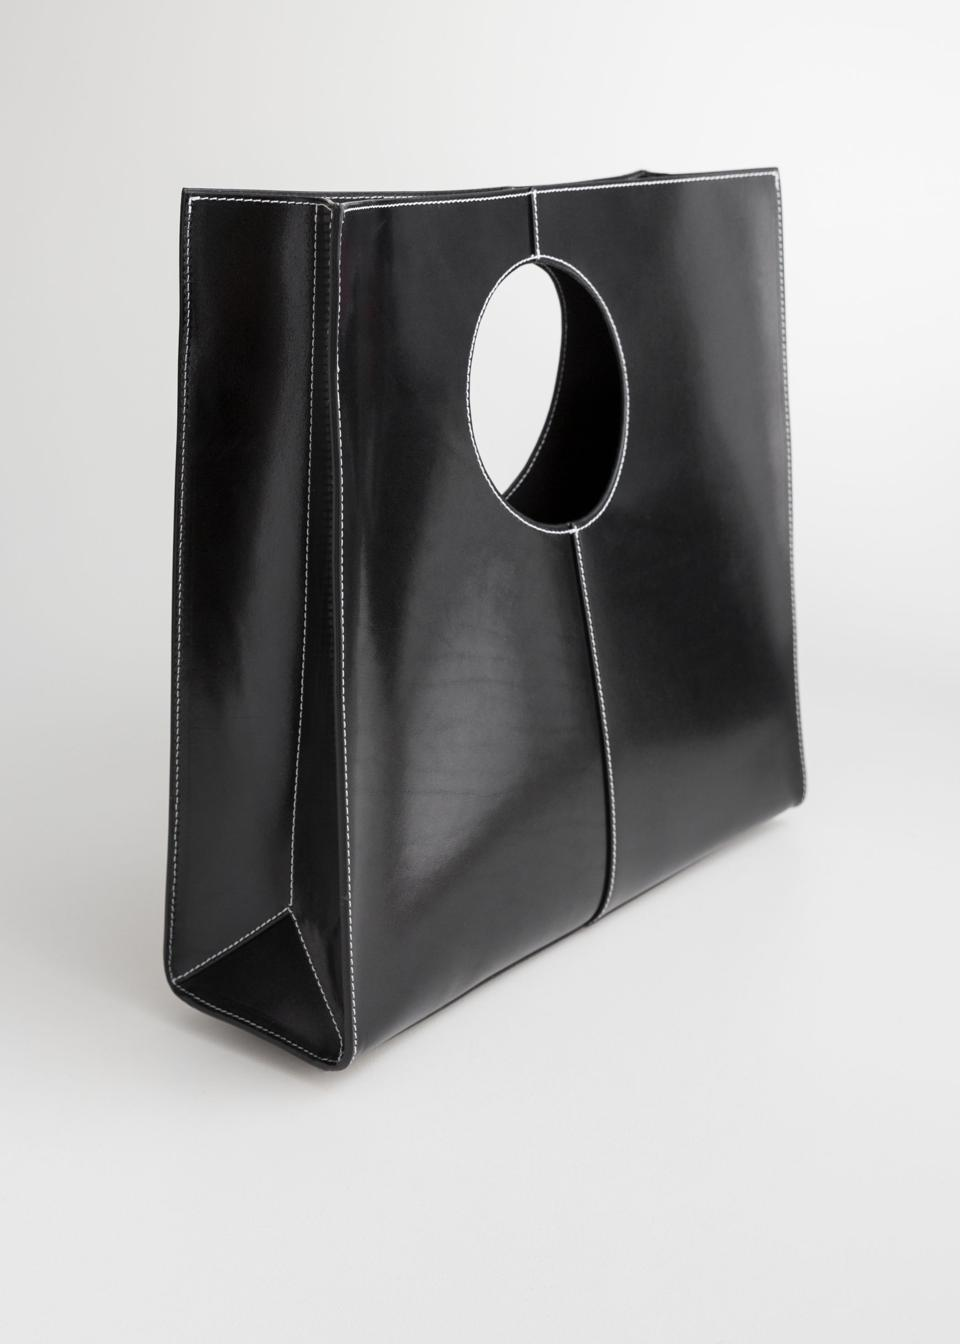 & Other Stories Structured Tote